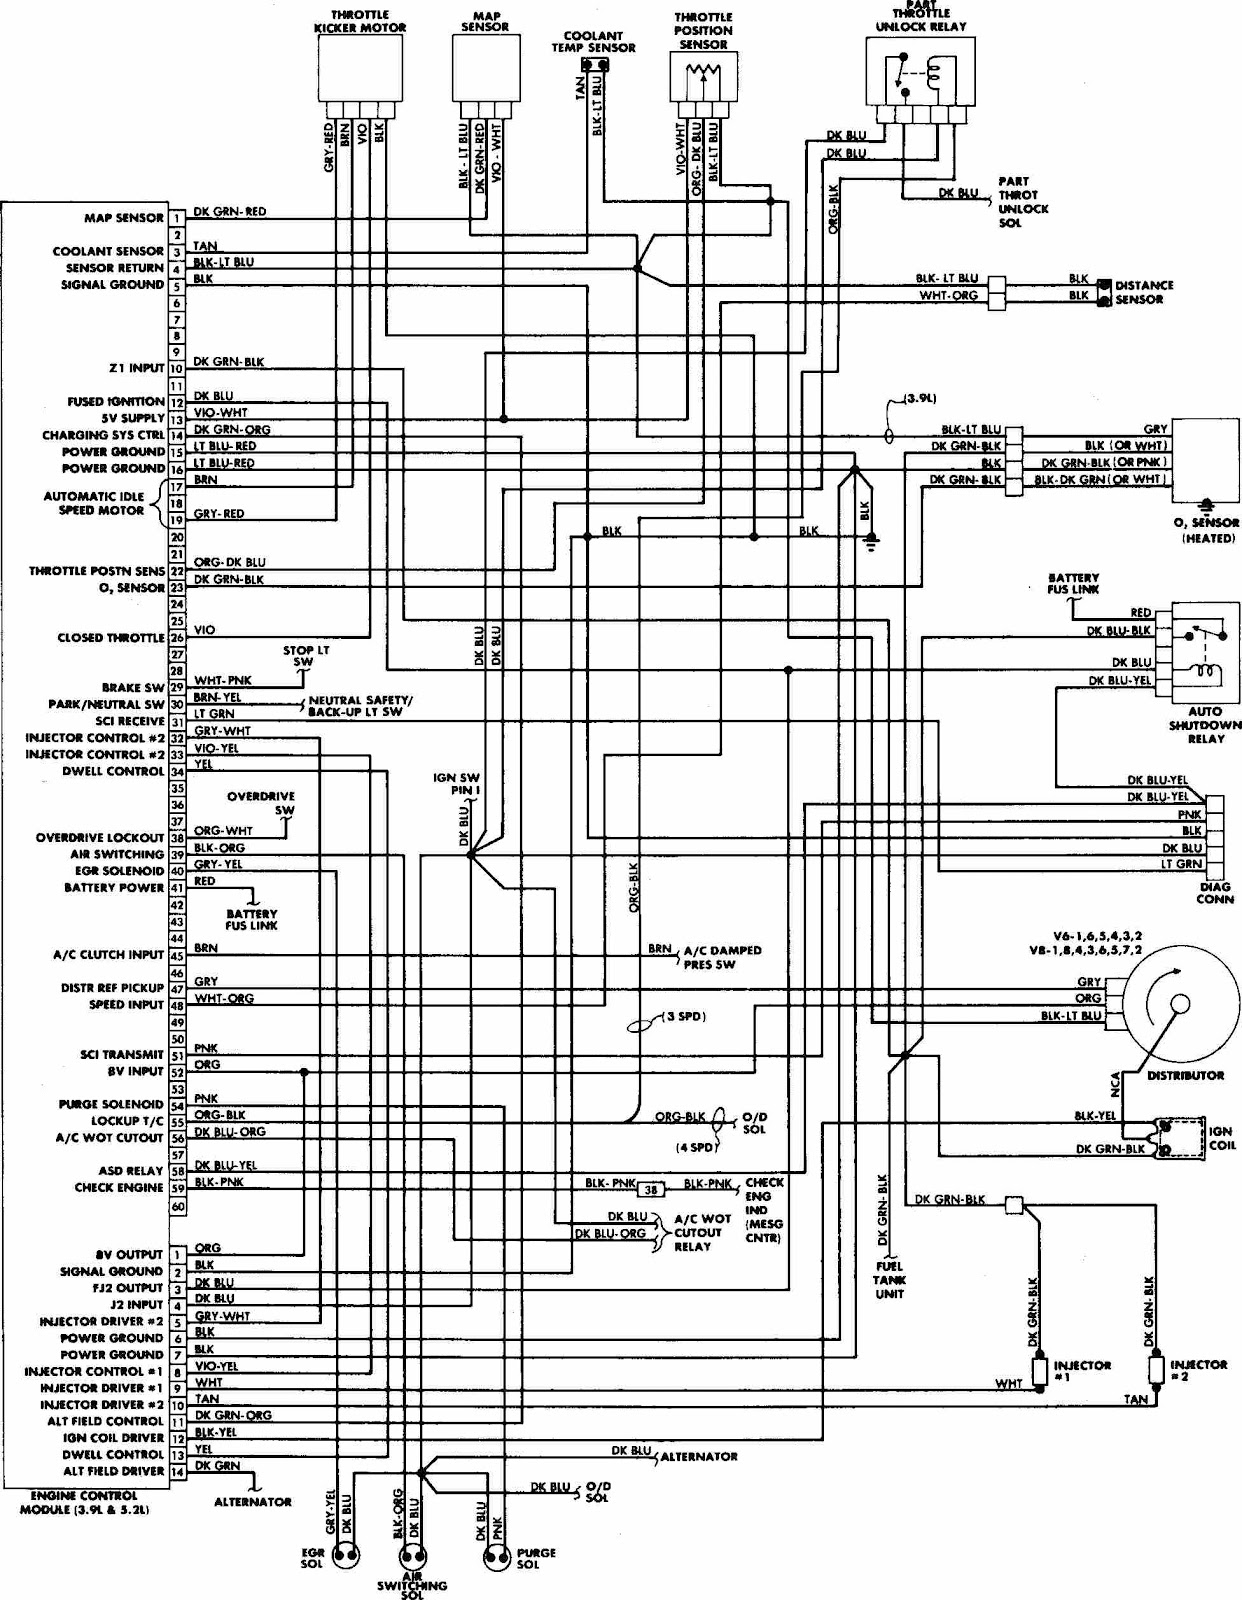 Dodge W100 1988 Engine Control Wiring Diagram | All about